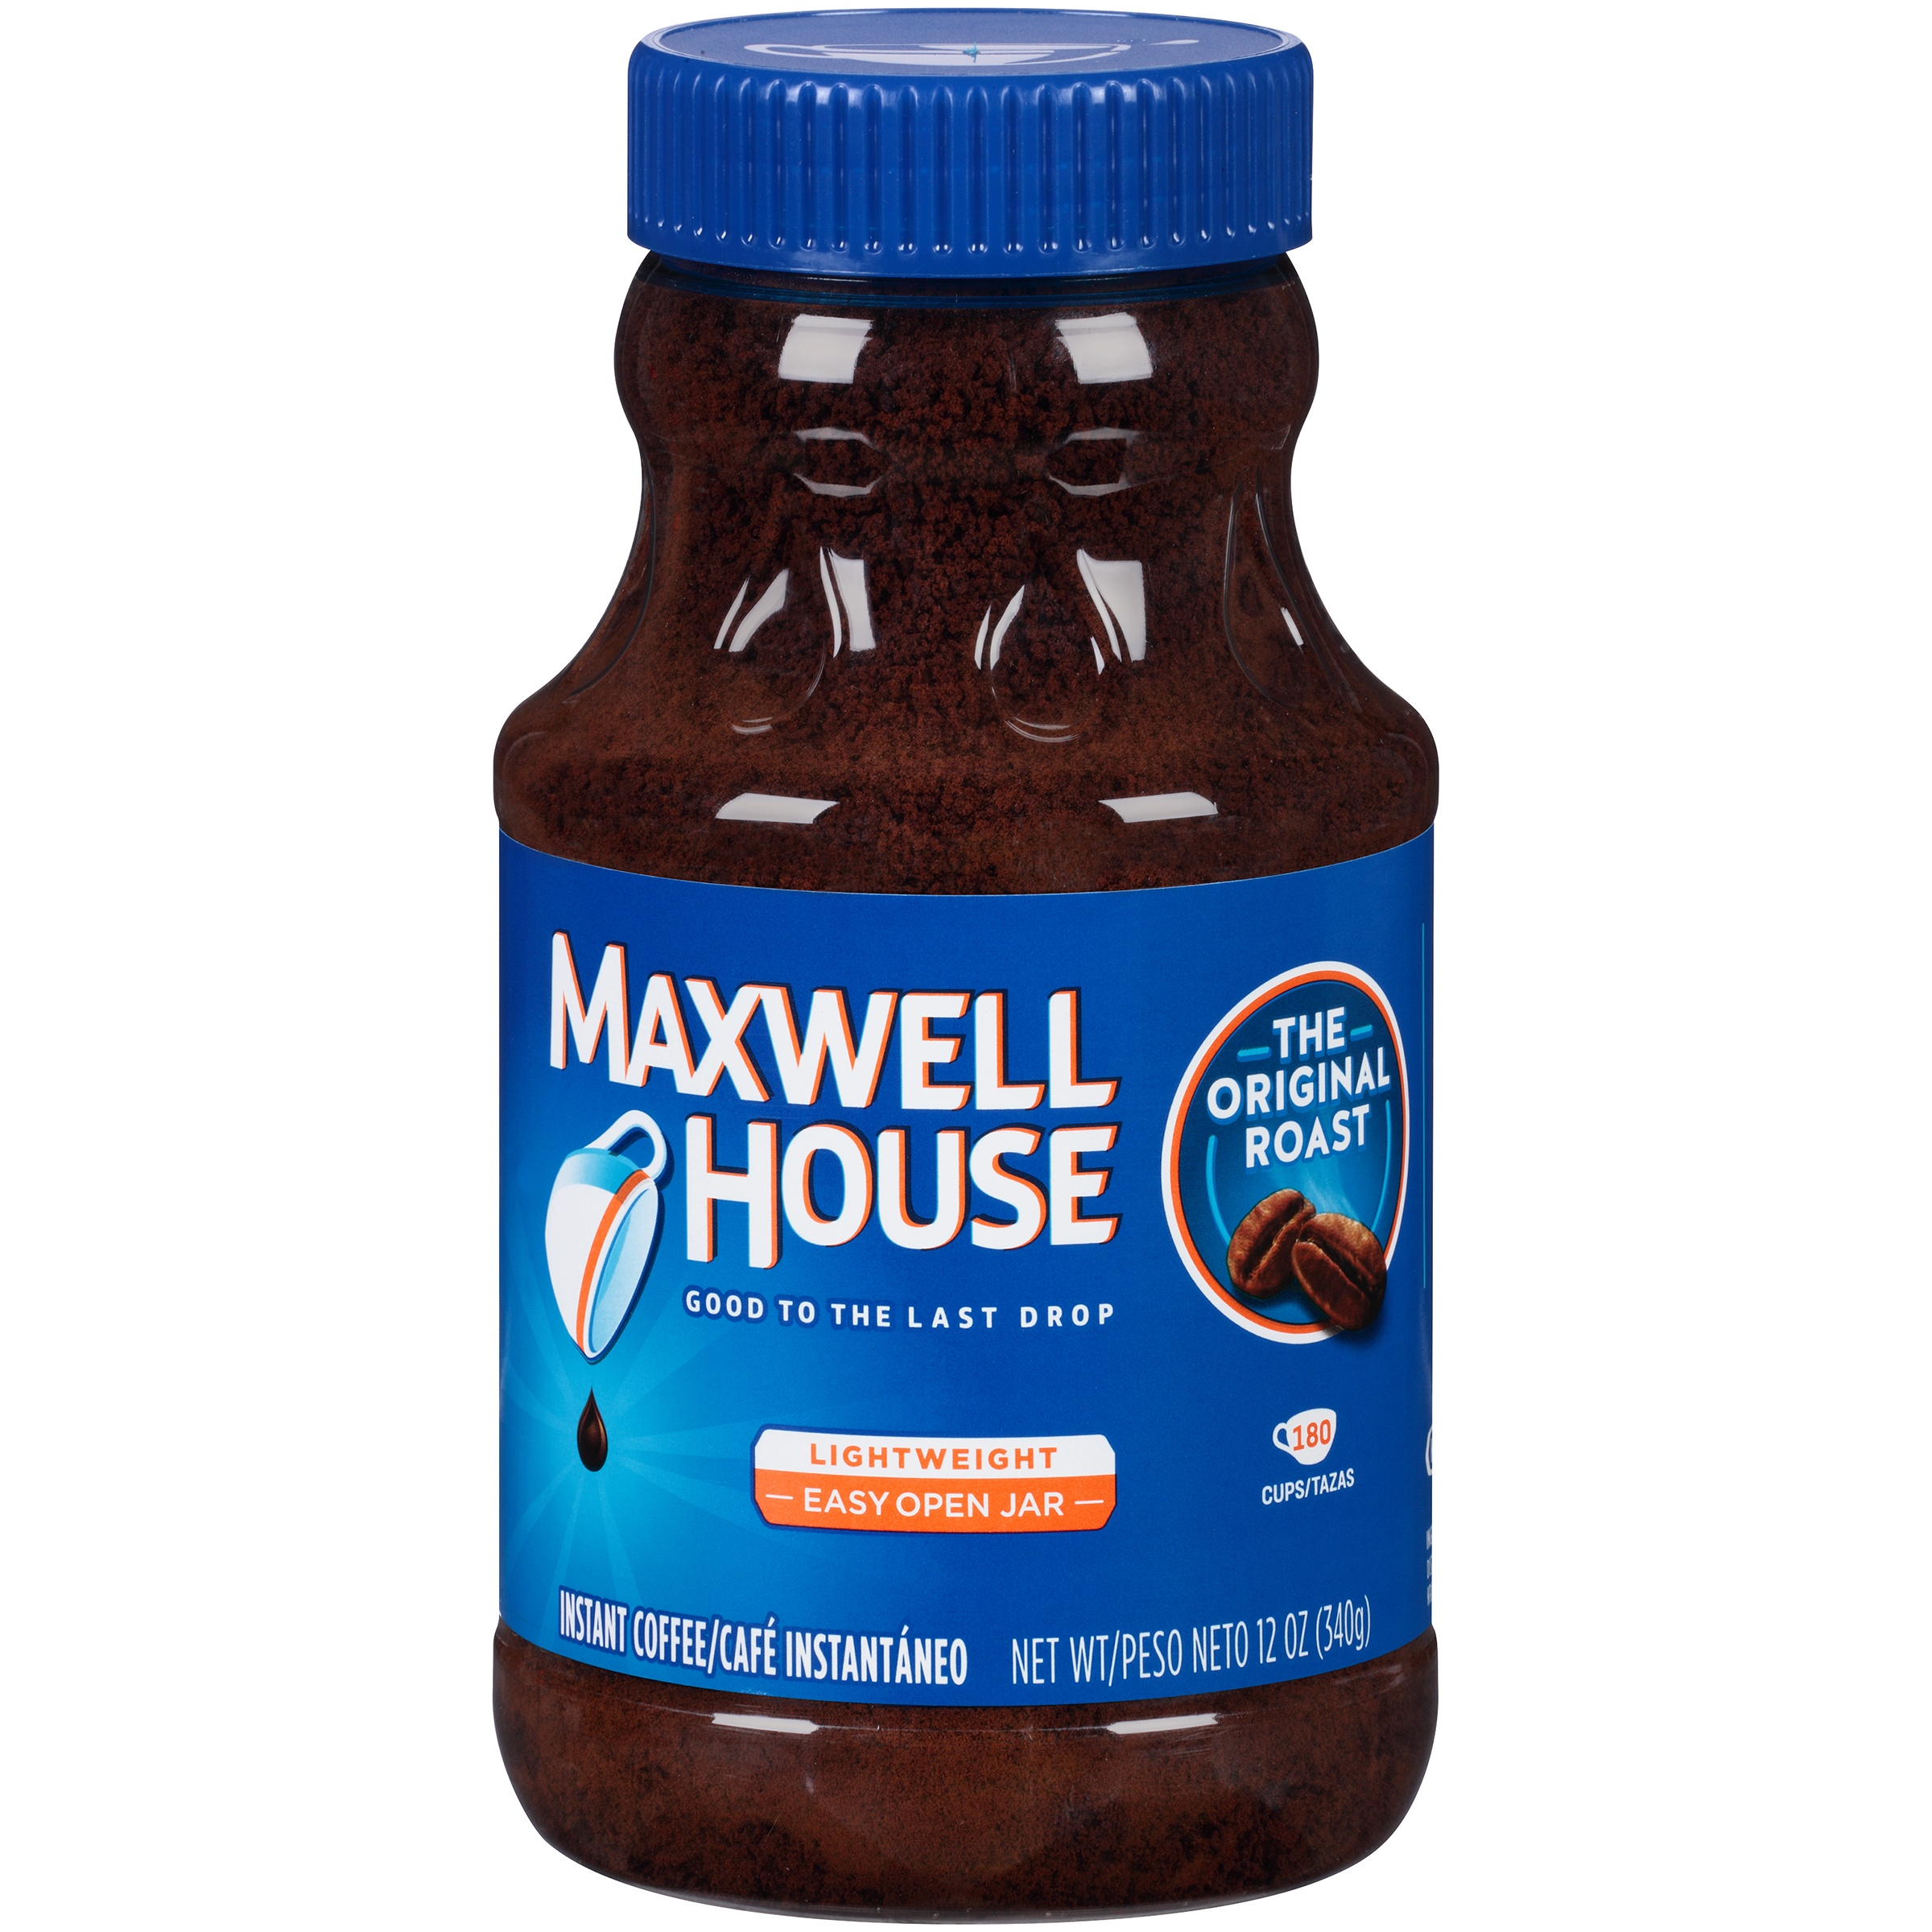 Maxwell House Original Roast Instant Coffee 12 oz. Jar